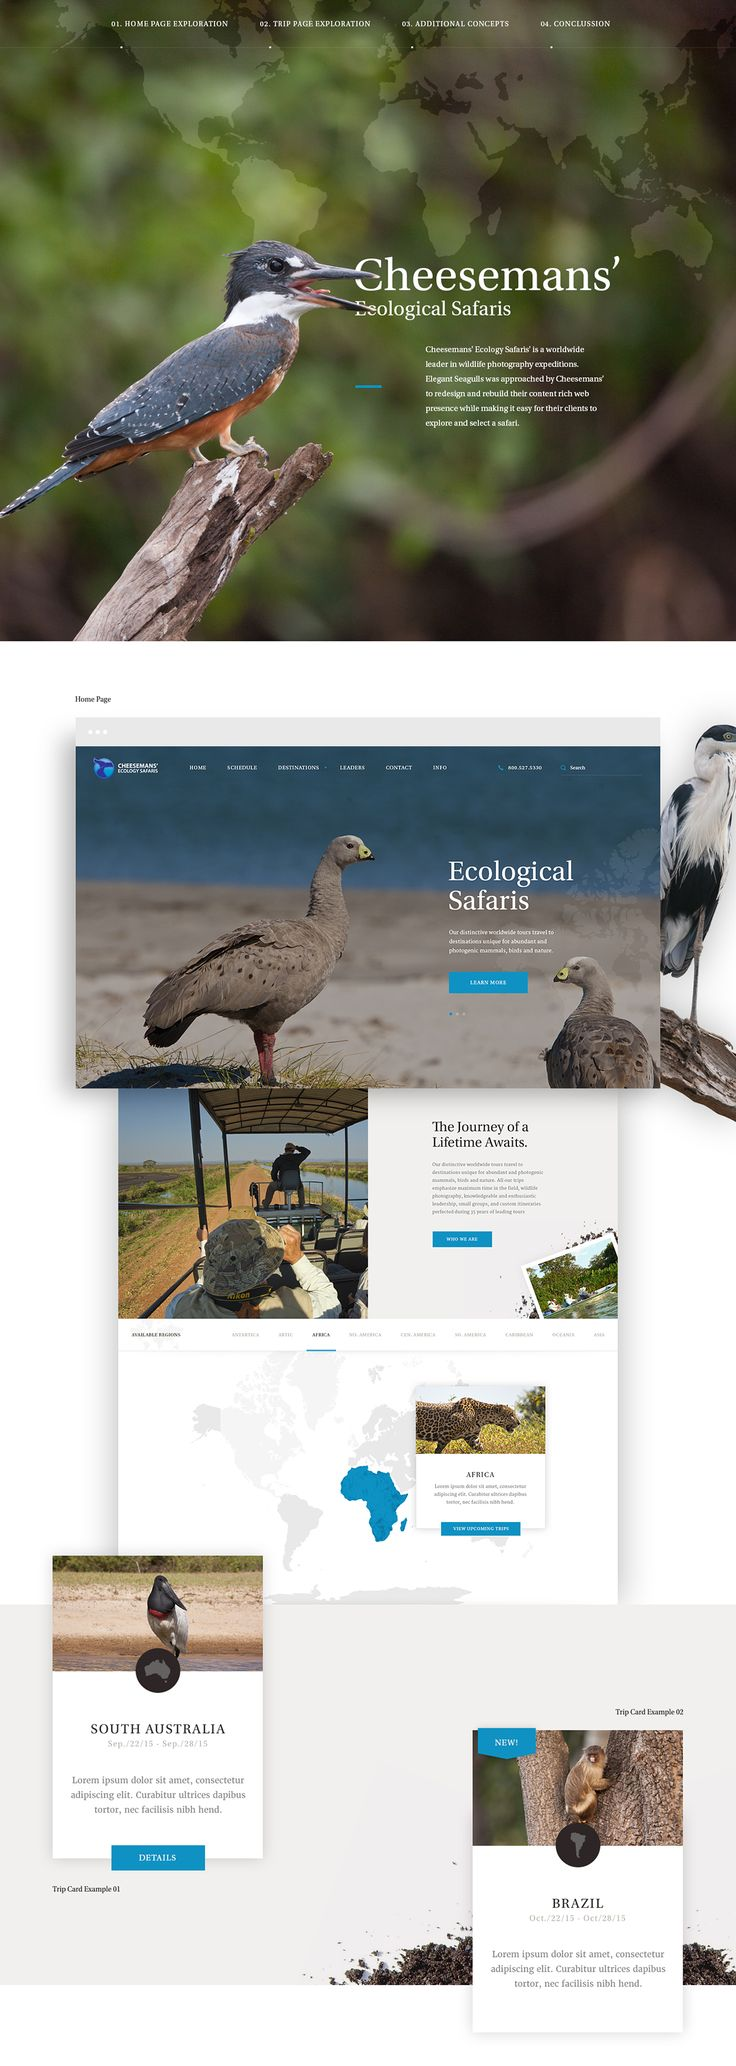 Cheesemans' Ecology Safaris on Web Design Served